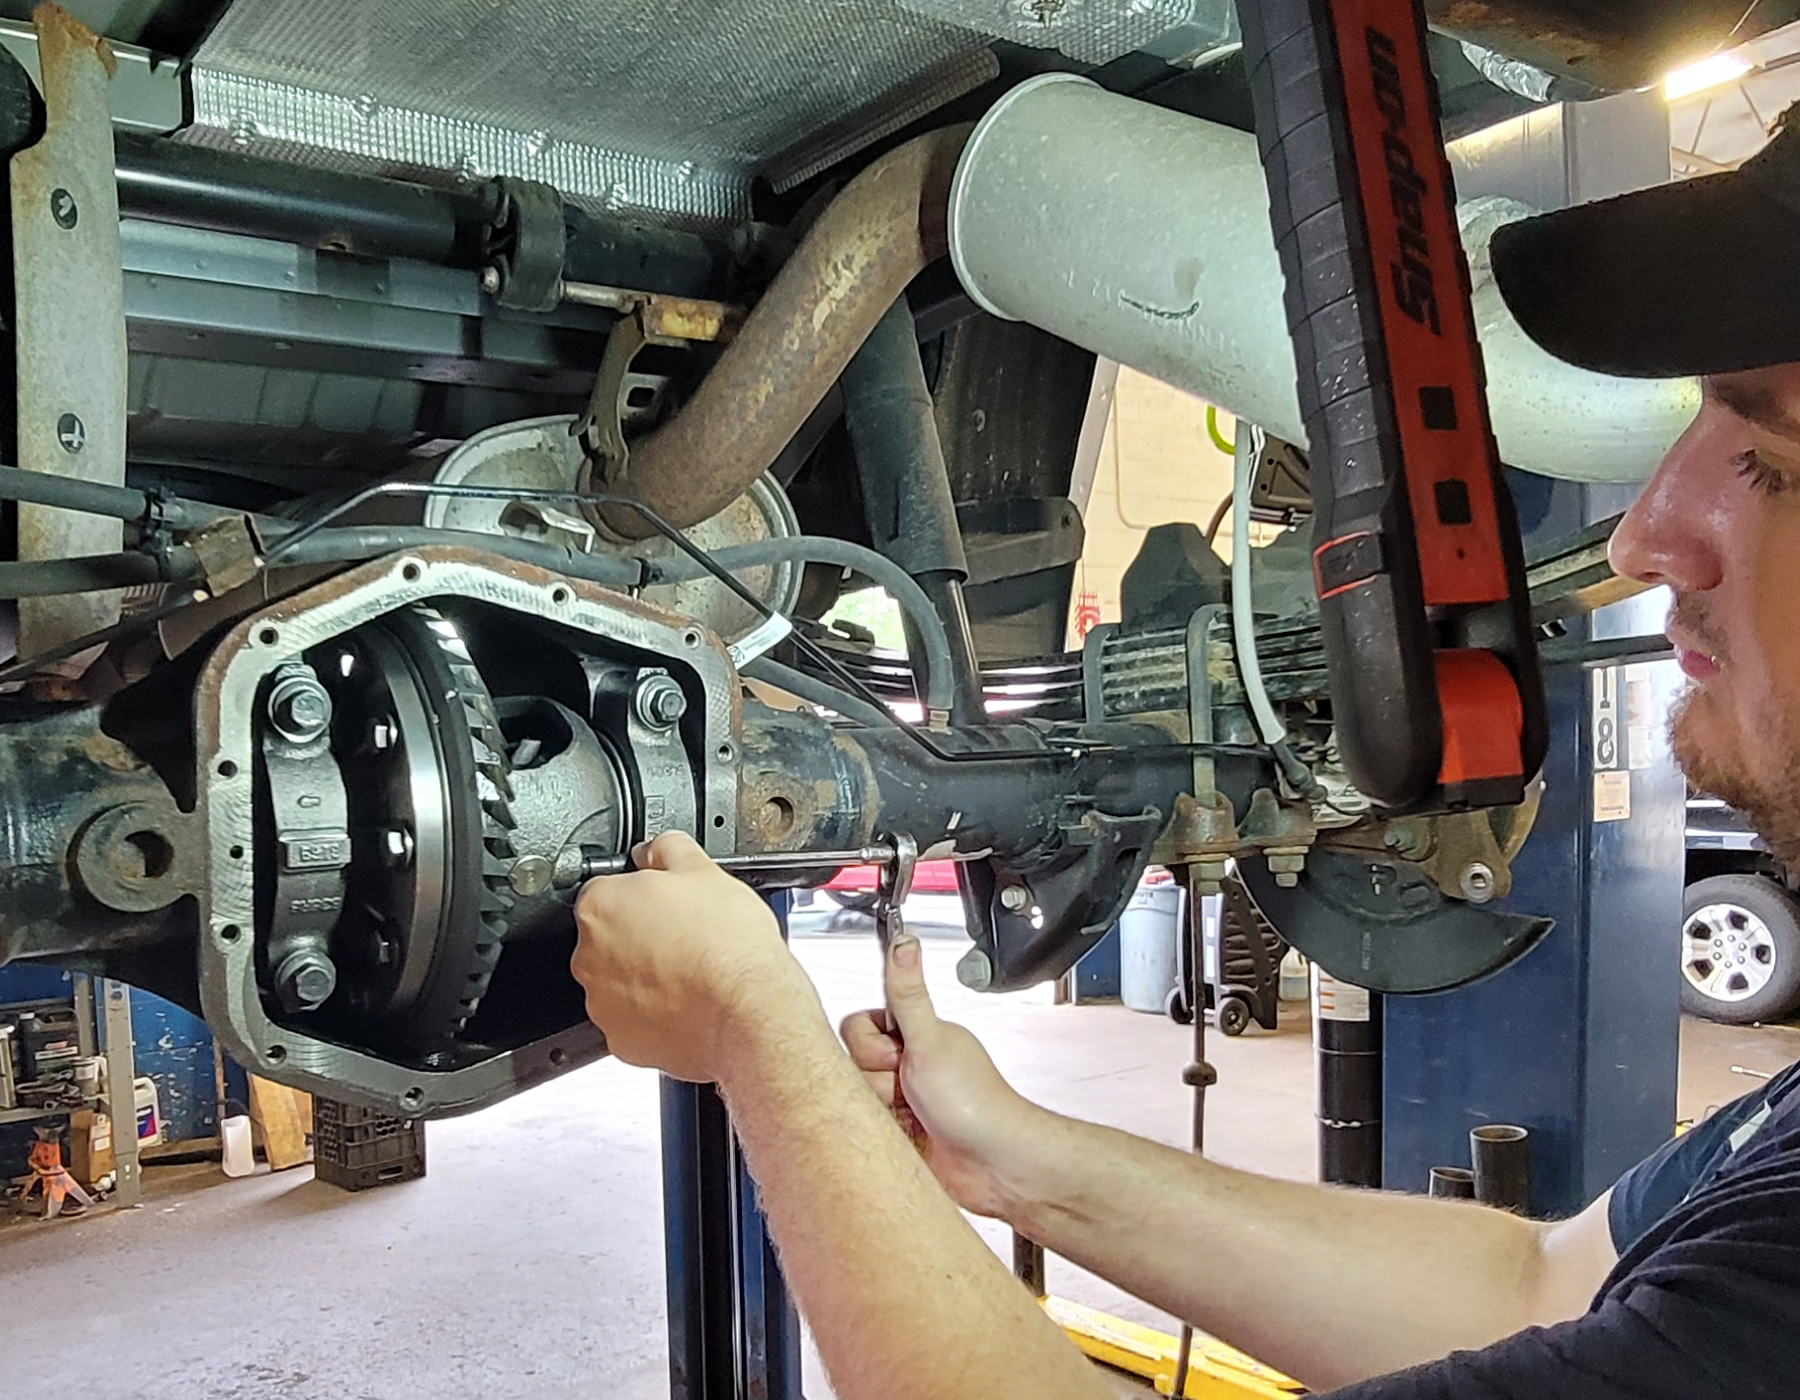 A service person helping a customer and an oil change.